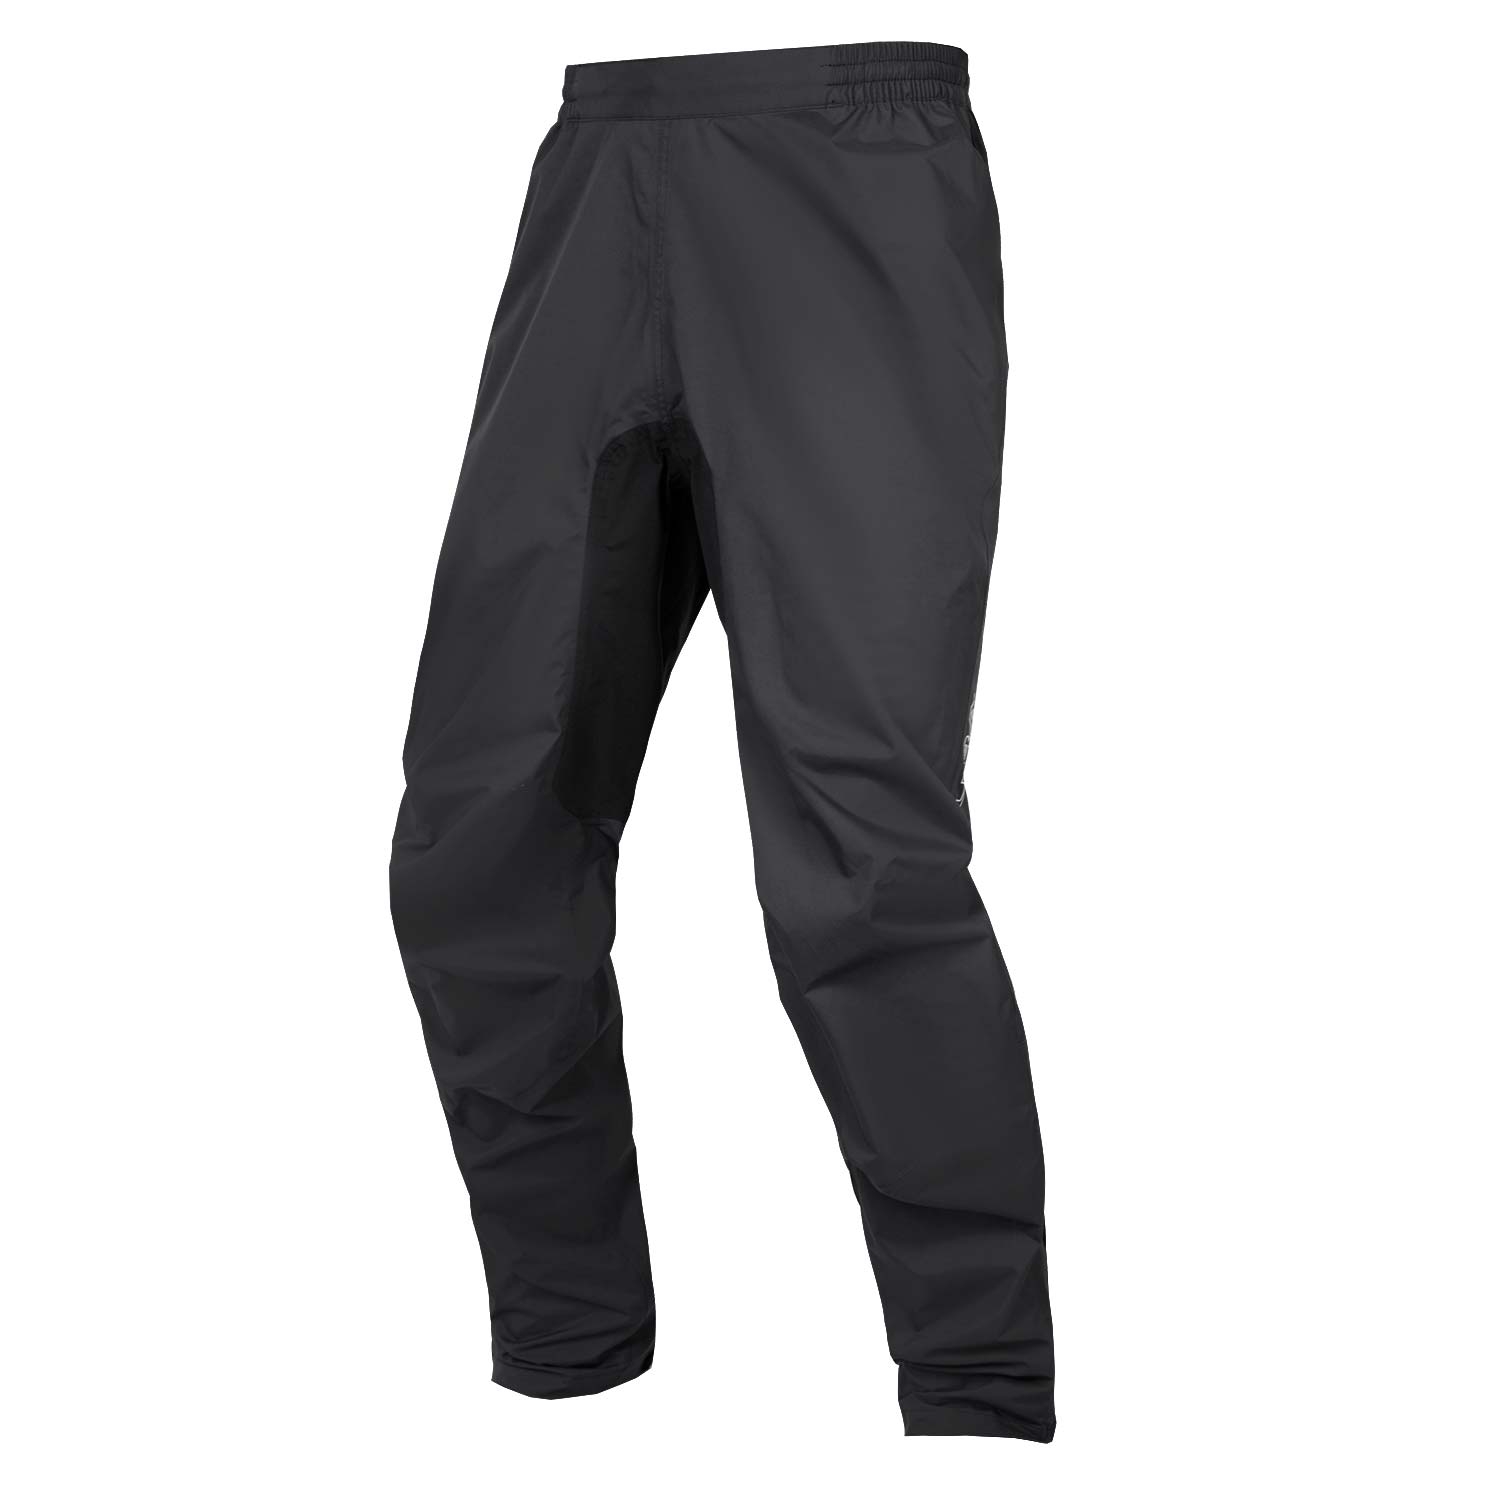 Endura Humvee waterproof trouser (online offer)